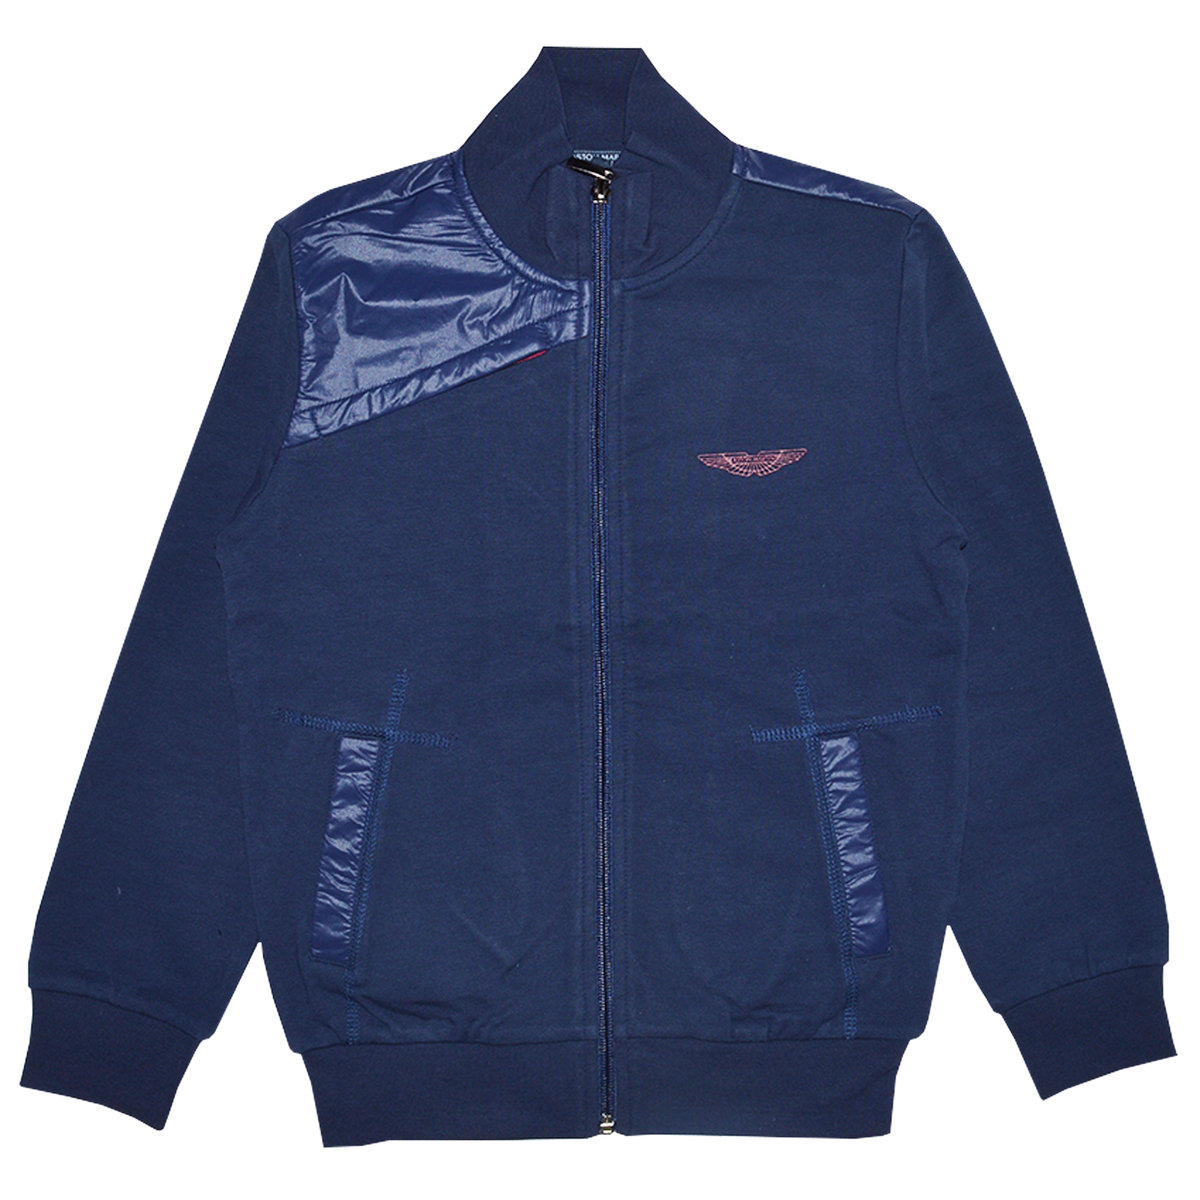 Boys Navy Blue Cotton Jacket Aston Martin Jackets Coats Angelibebe